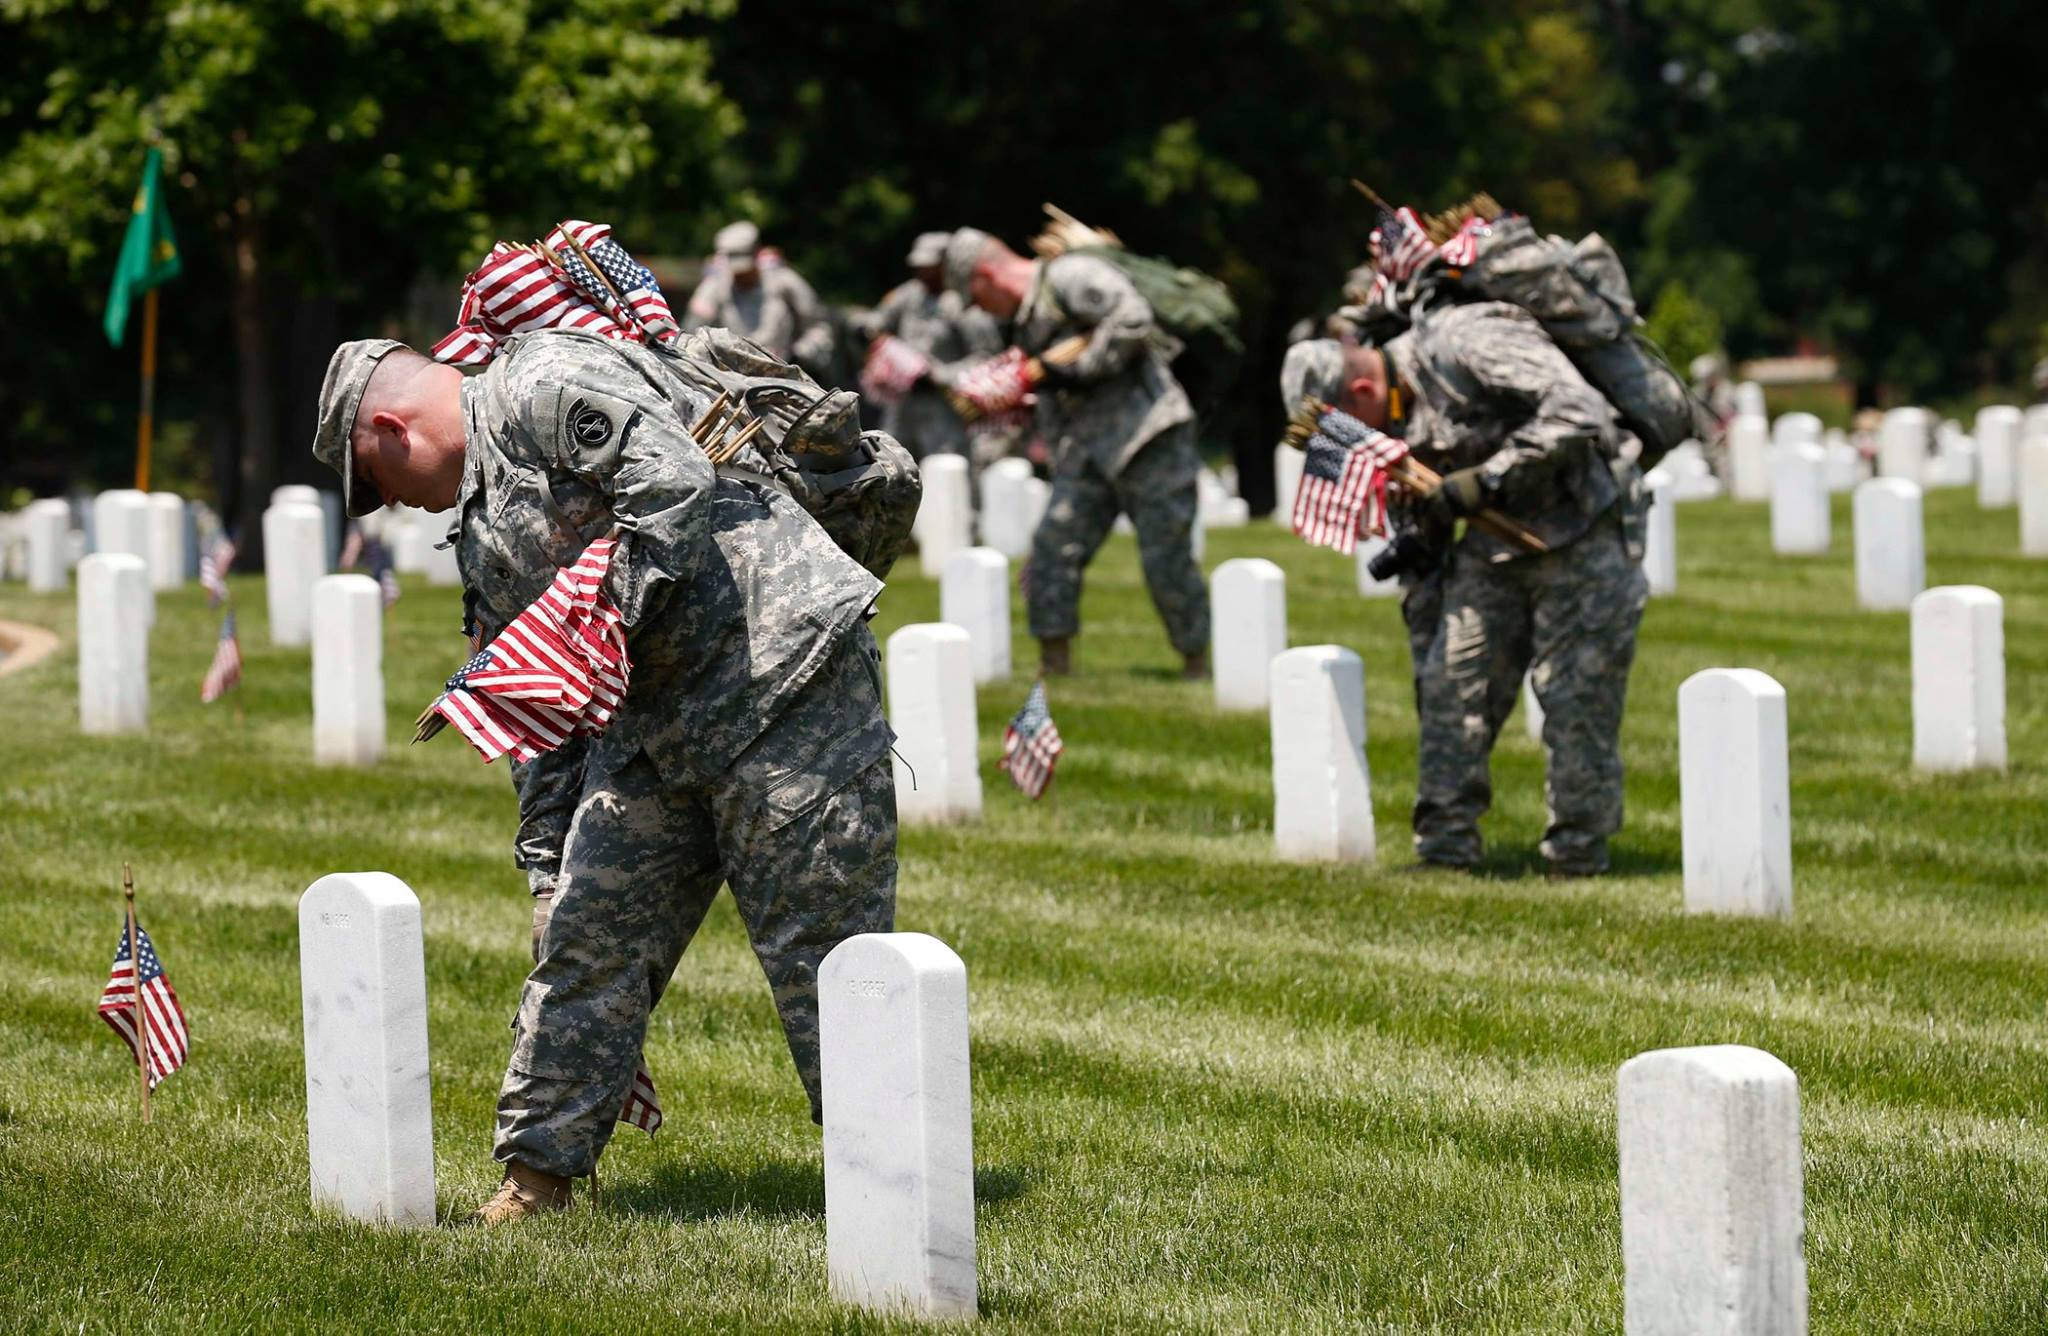 Military planting flags on Memorial Day